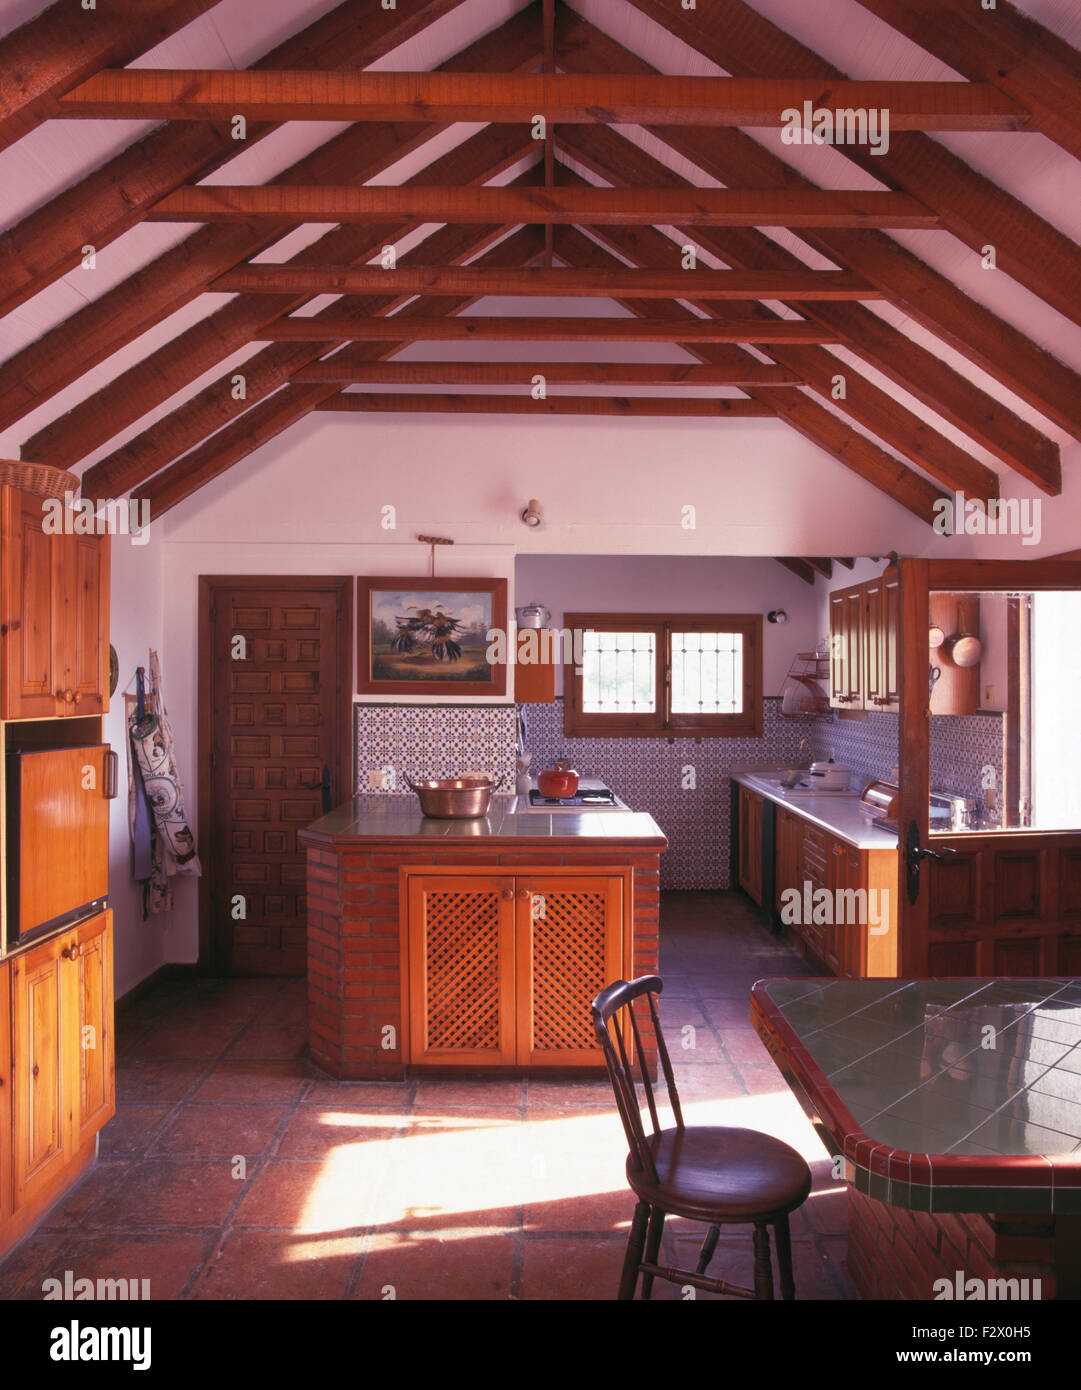 Wooden Beams On Apex Ceiling In Spanish Country Kitchen With Fretwork Doors  On Island Unit